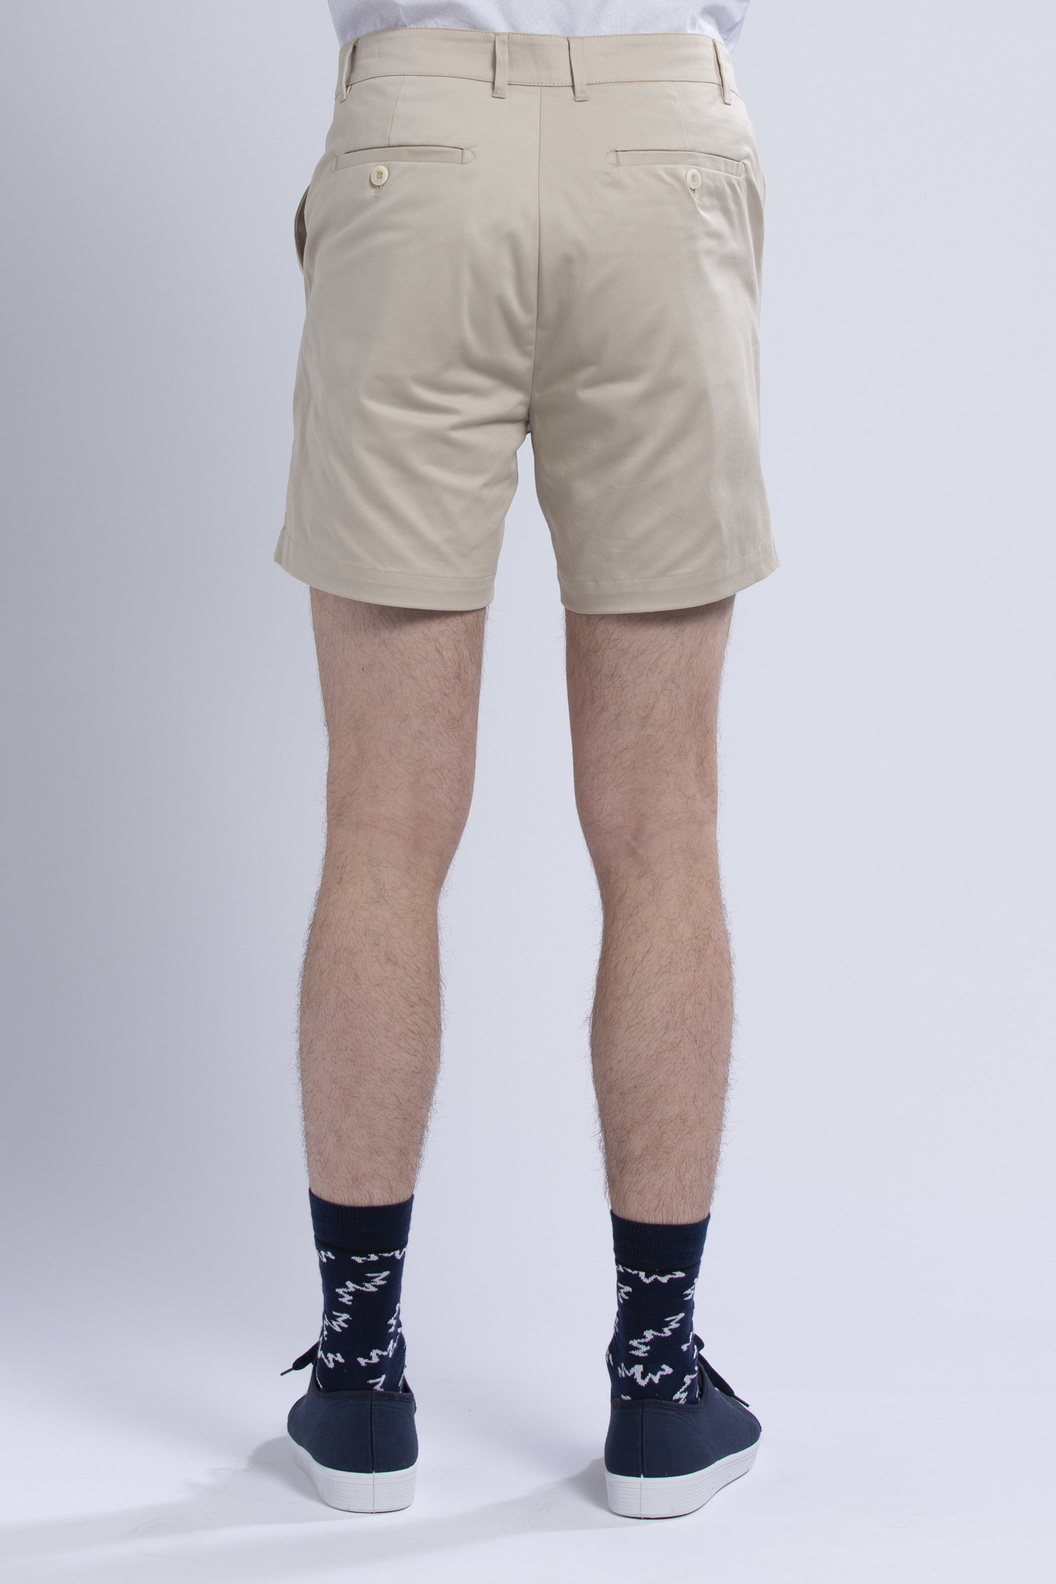 SHORTPANTS SP5 - Sand